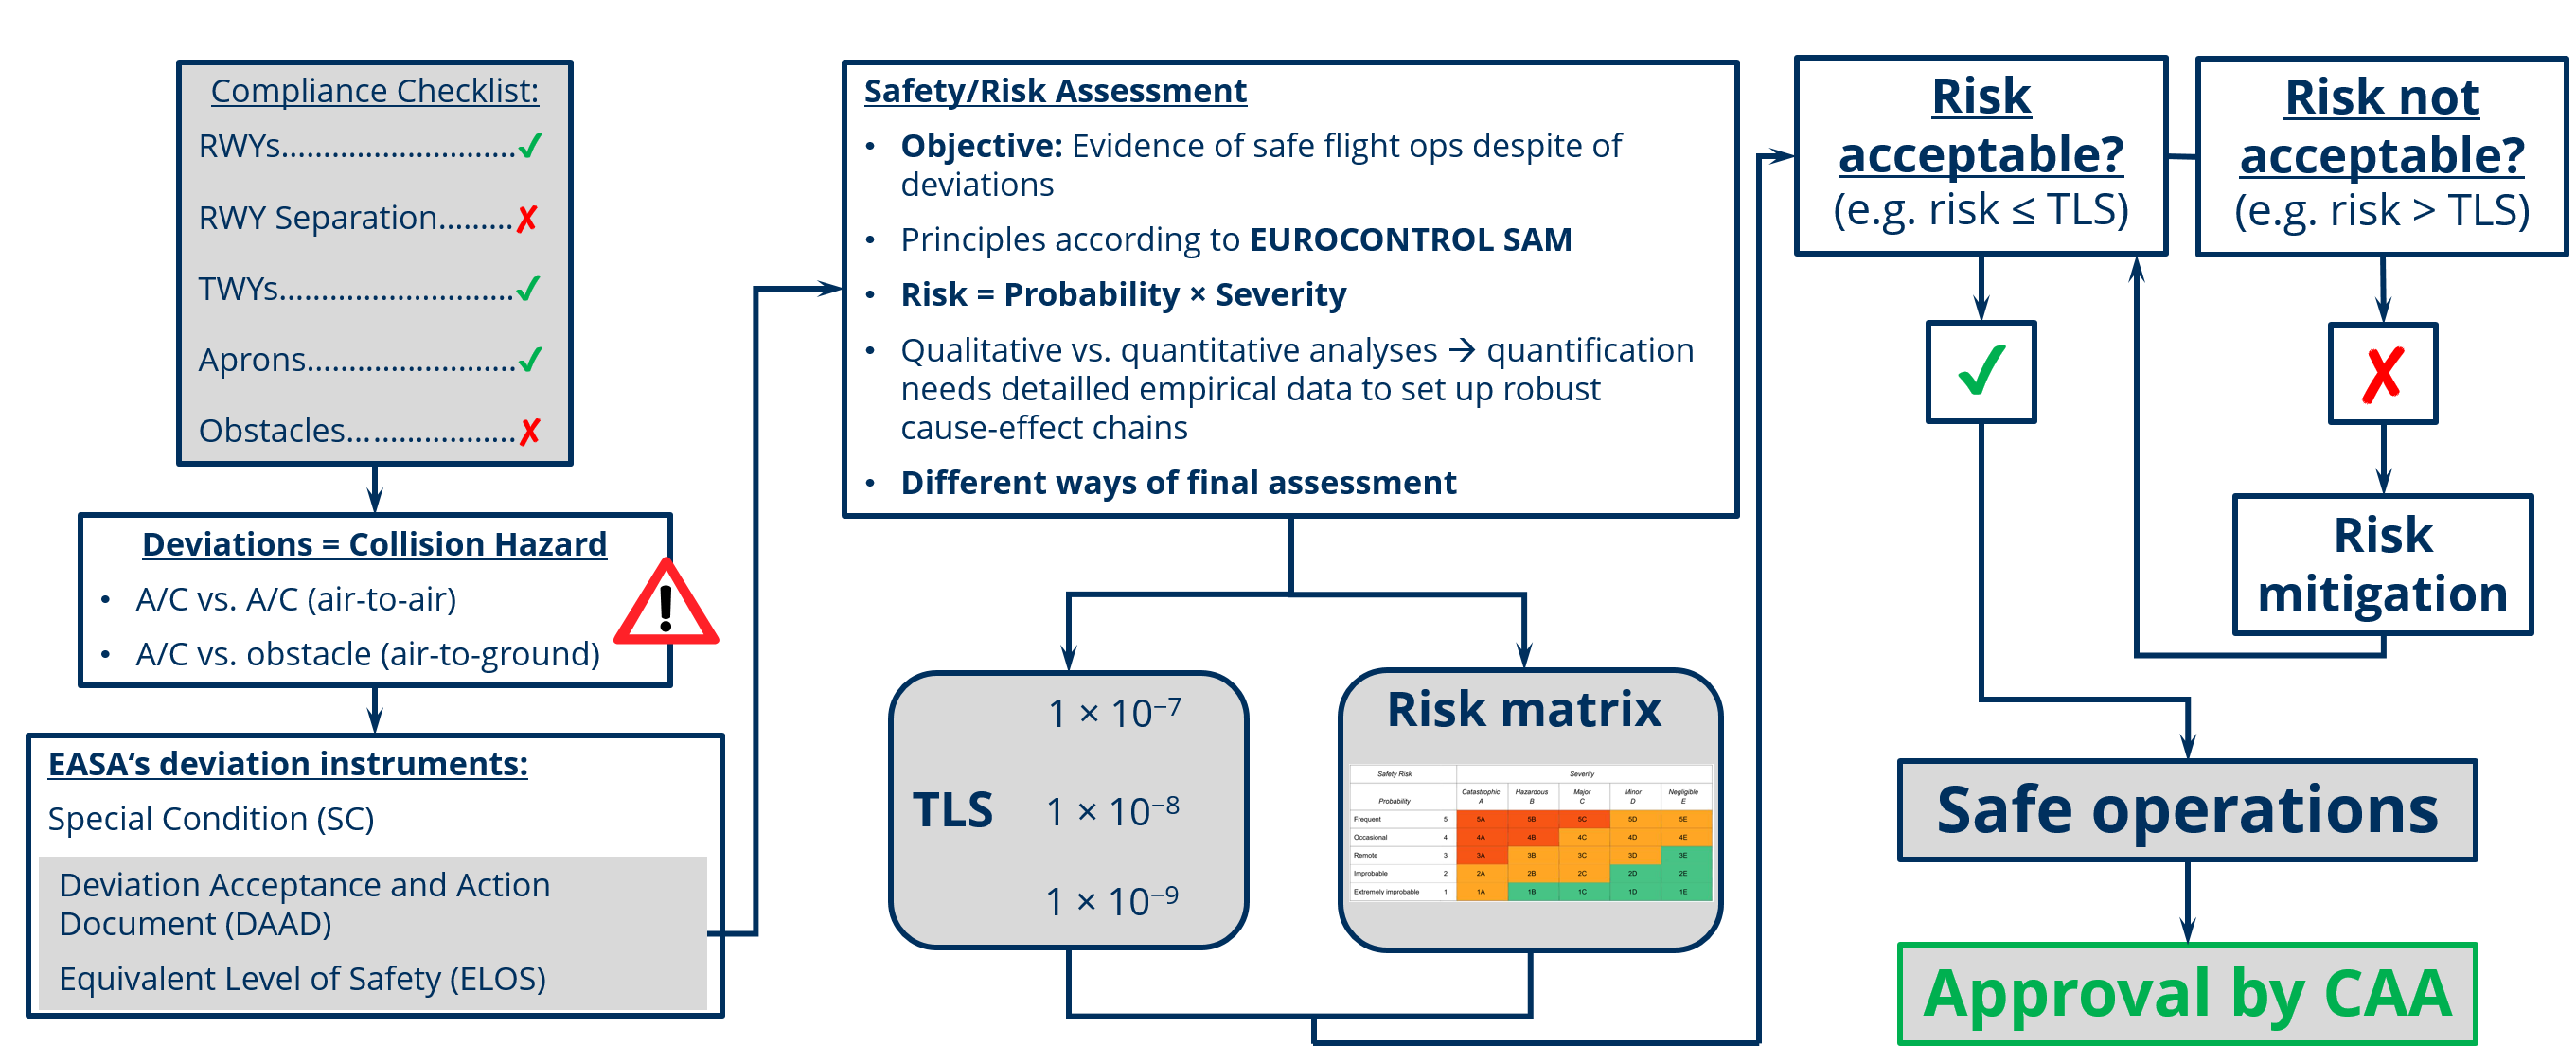 General scheme for risk determination in the event of detected guideline deviations (© GfL mbH)